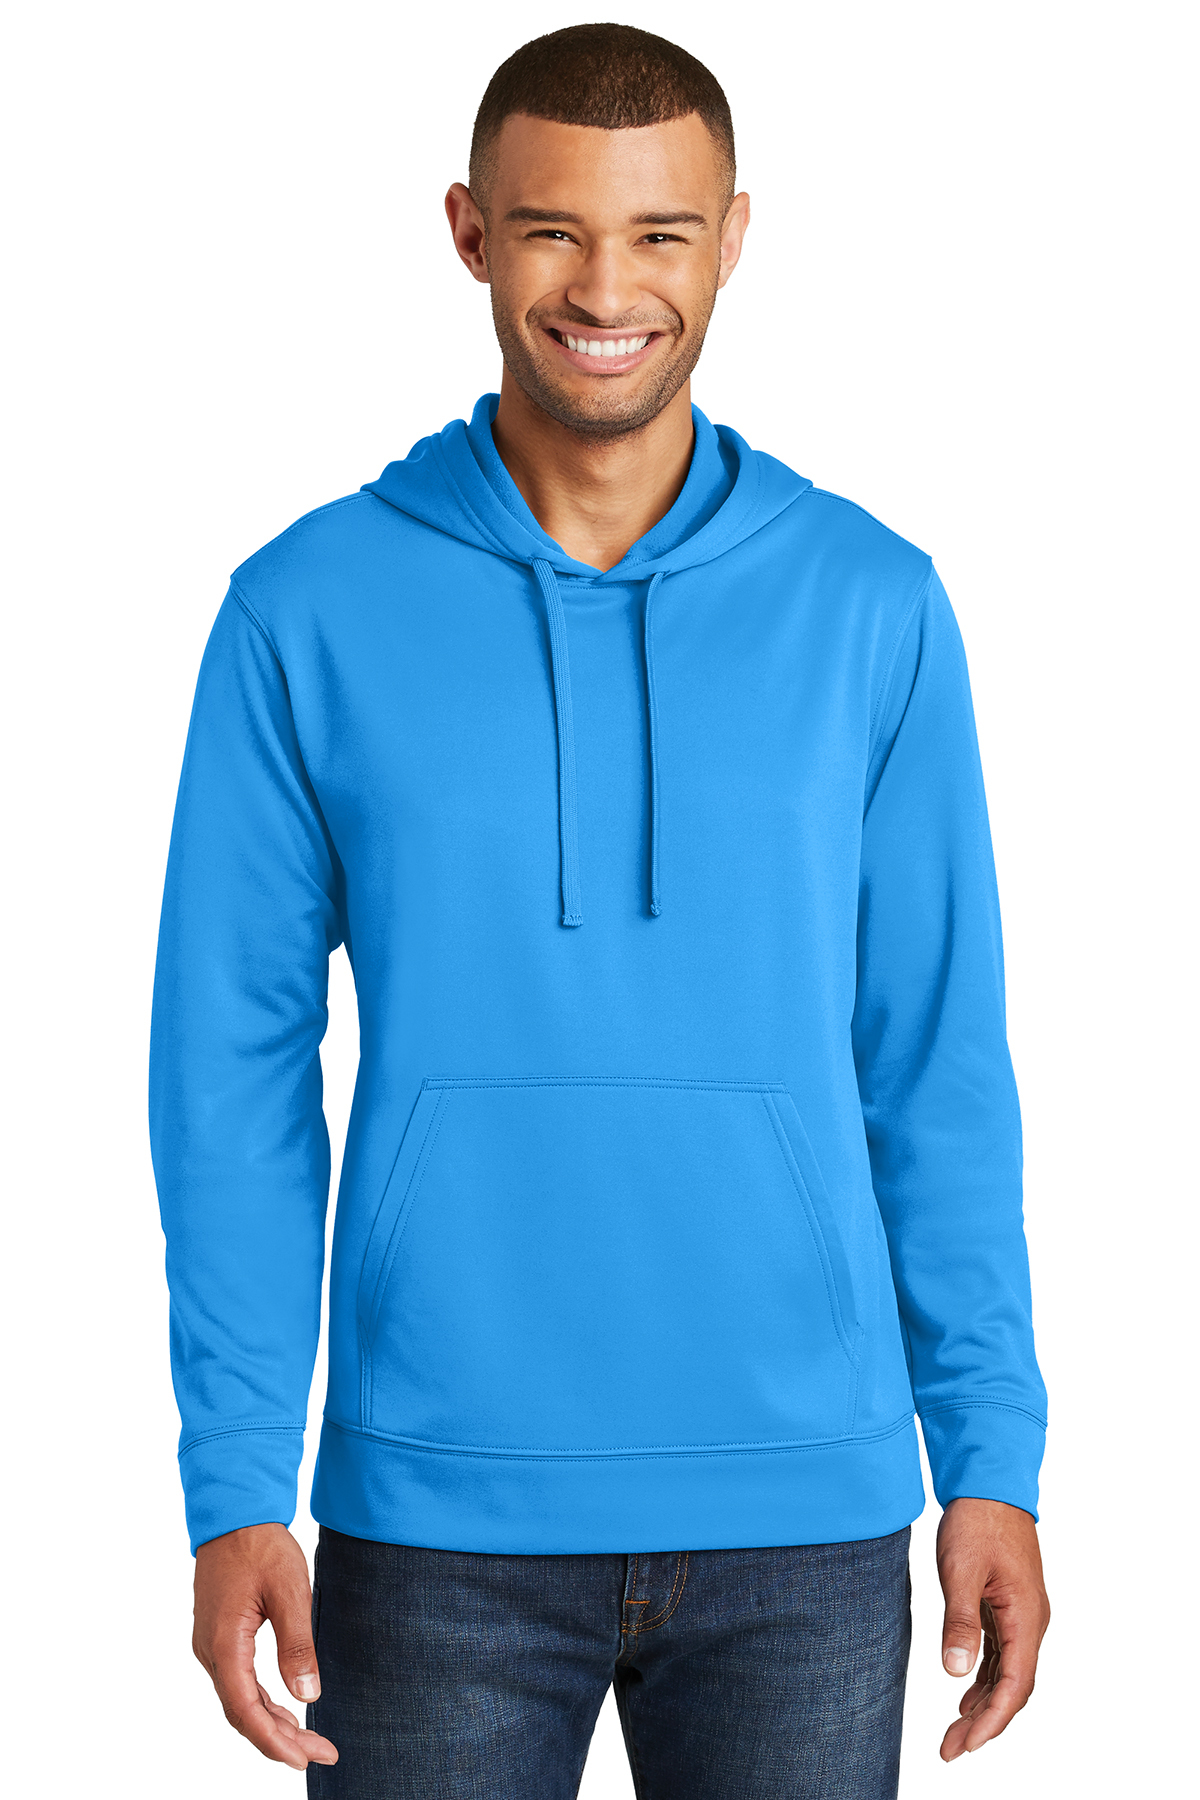 Port & Company PC590H - Performance Fleece Pullover Hooded Sweatshirt